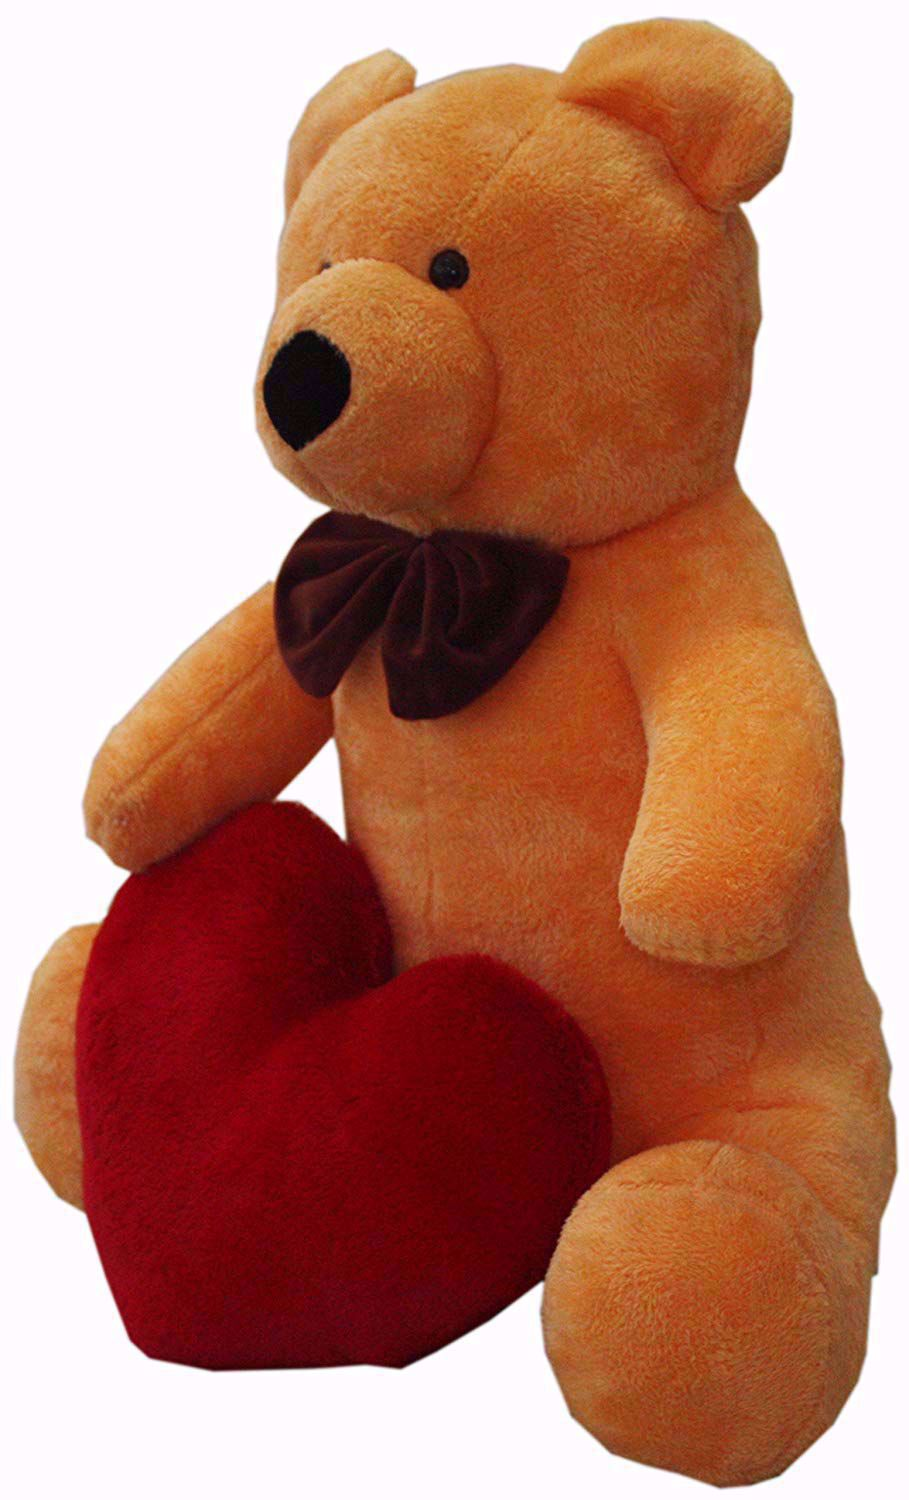 Super soft Teddy with Red Heart, Pumpkin Orange,,red teddy bear with heart online